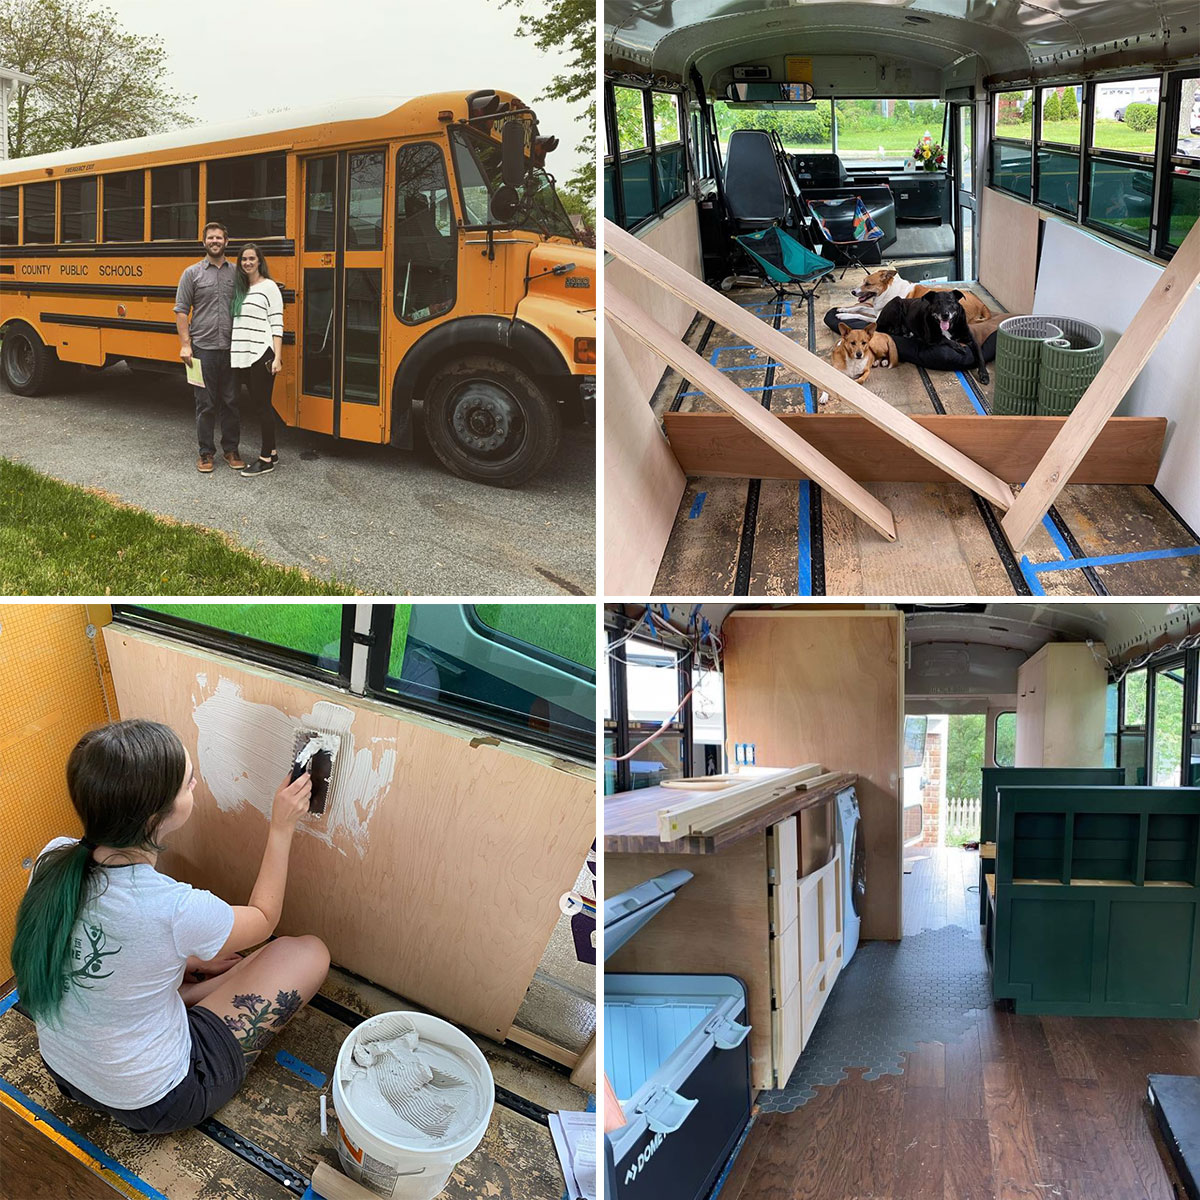 Four photos in a grid: a couple posing in front of a yellow school bus; the gutted interior of the bus, with three dogs lying on the floor; a woman sitting on the ground, coating an interior wall of the bus with plaster; the interior of the bus after much renovation, with a kitchen counter, ice chest, and dining booth.